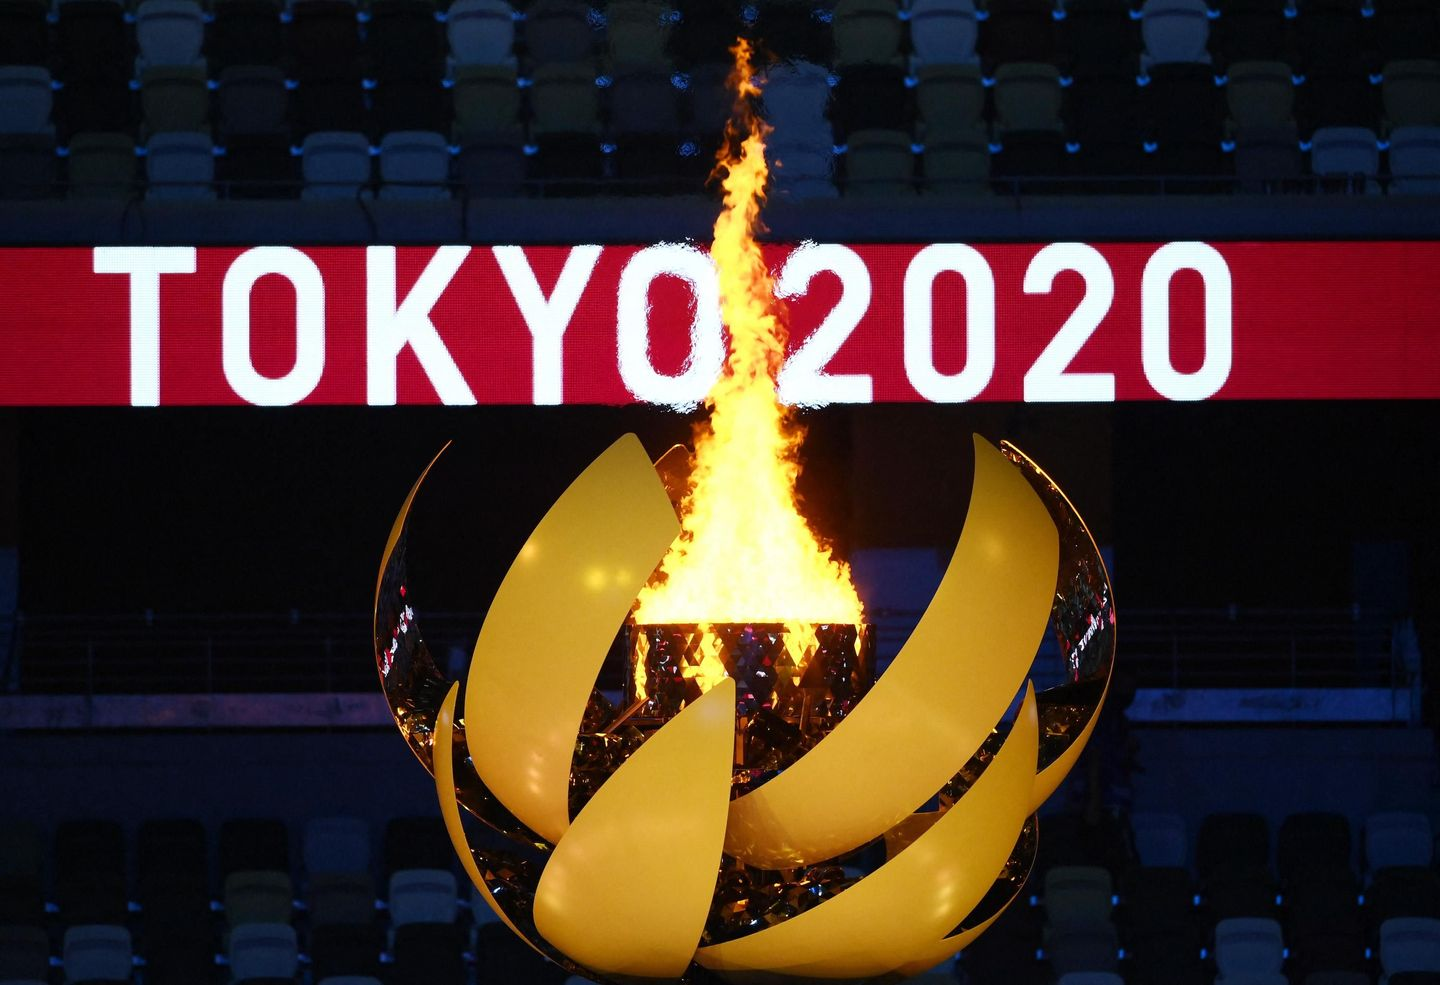 Tokyo 20 Olympic tennis dates, entry lists, seeds and more